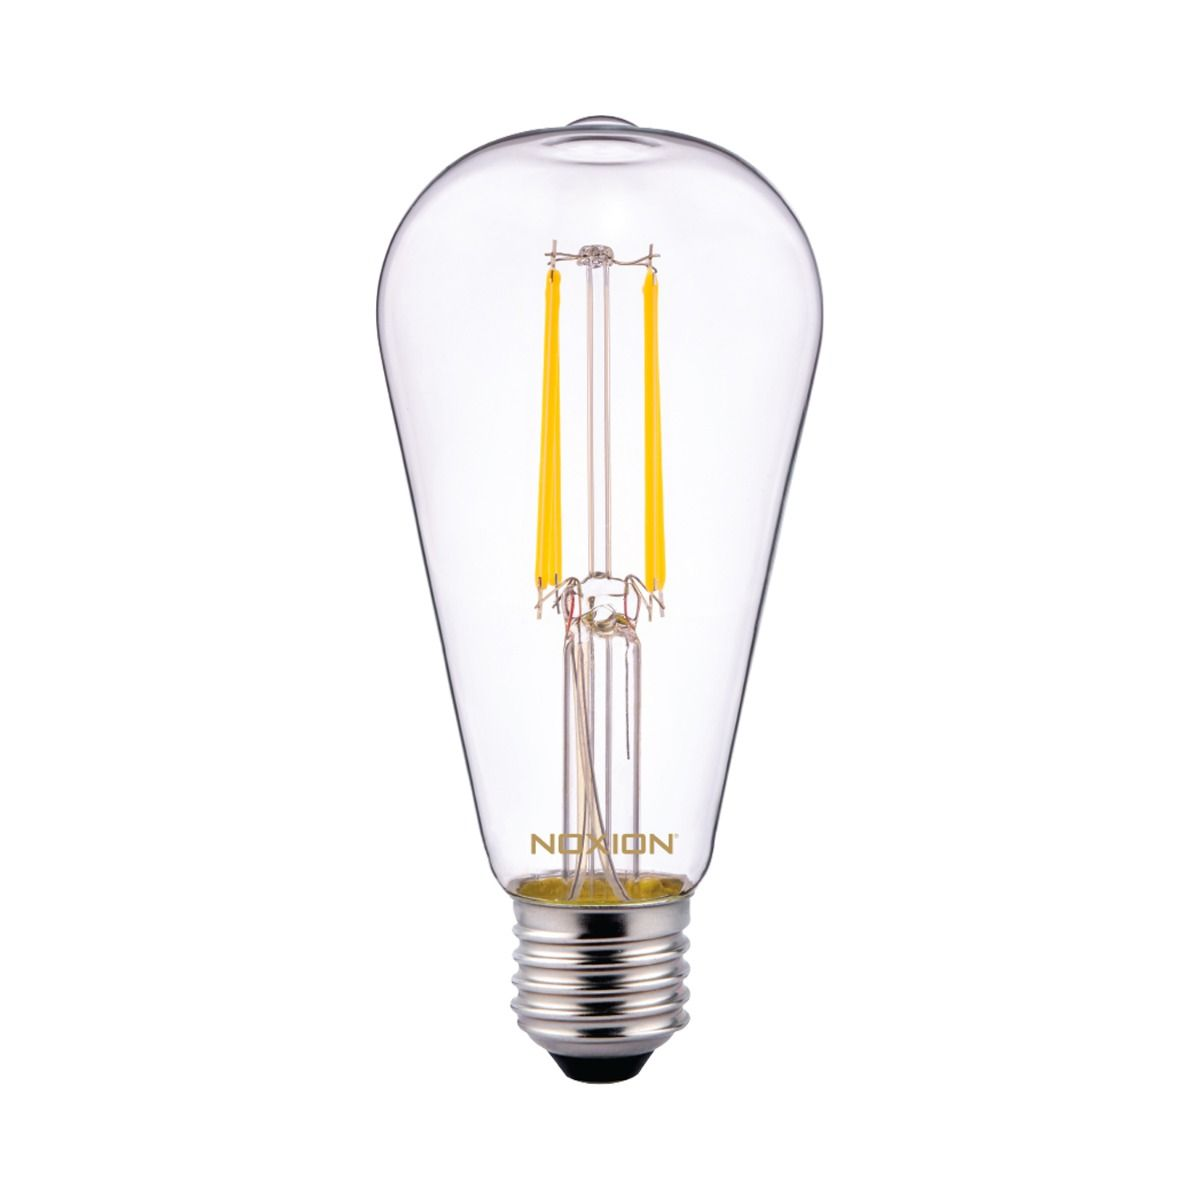 Noxion Lucent Classic LED Filament ST64 E27 6.5W 827 clear| replacer for 60W